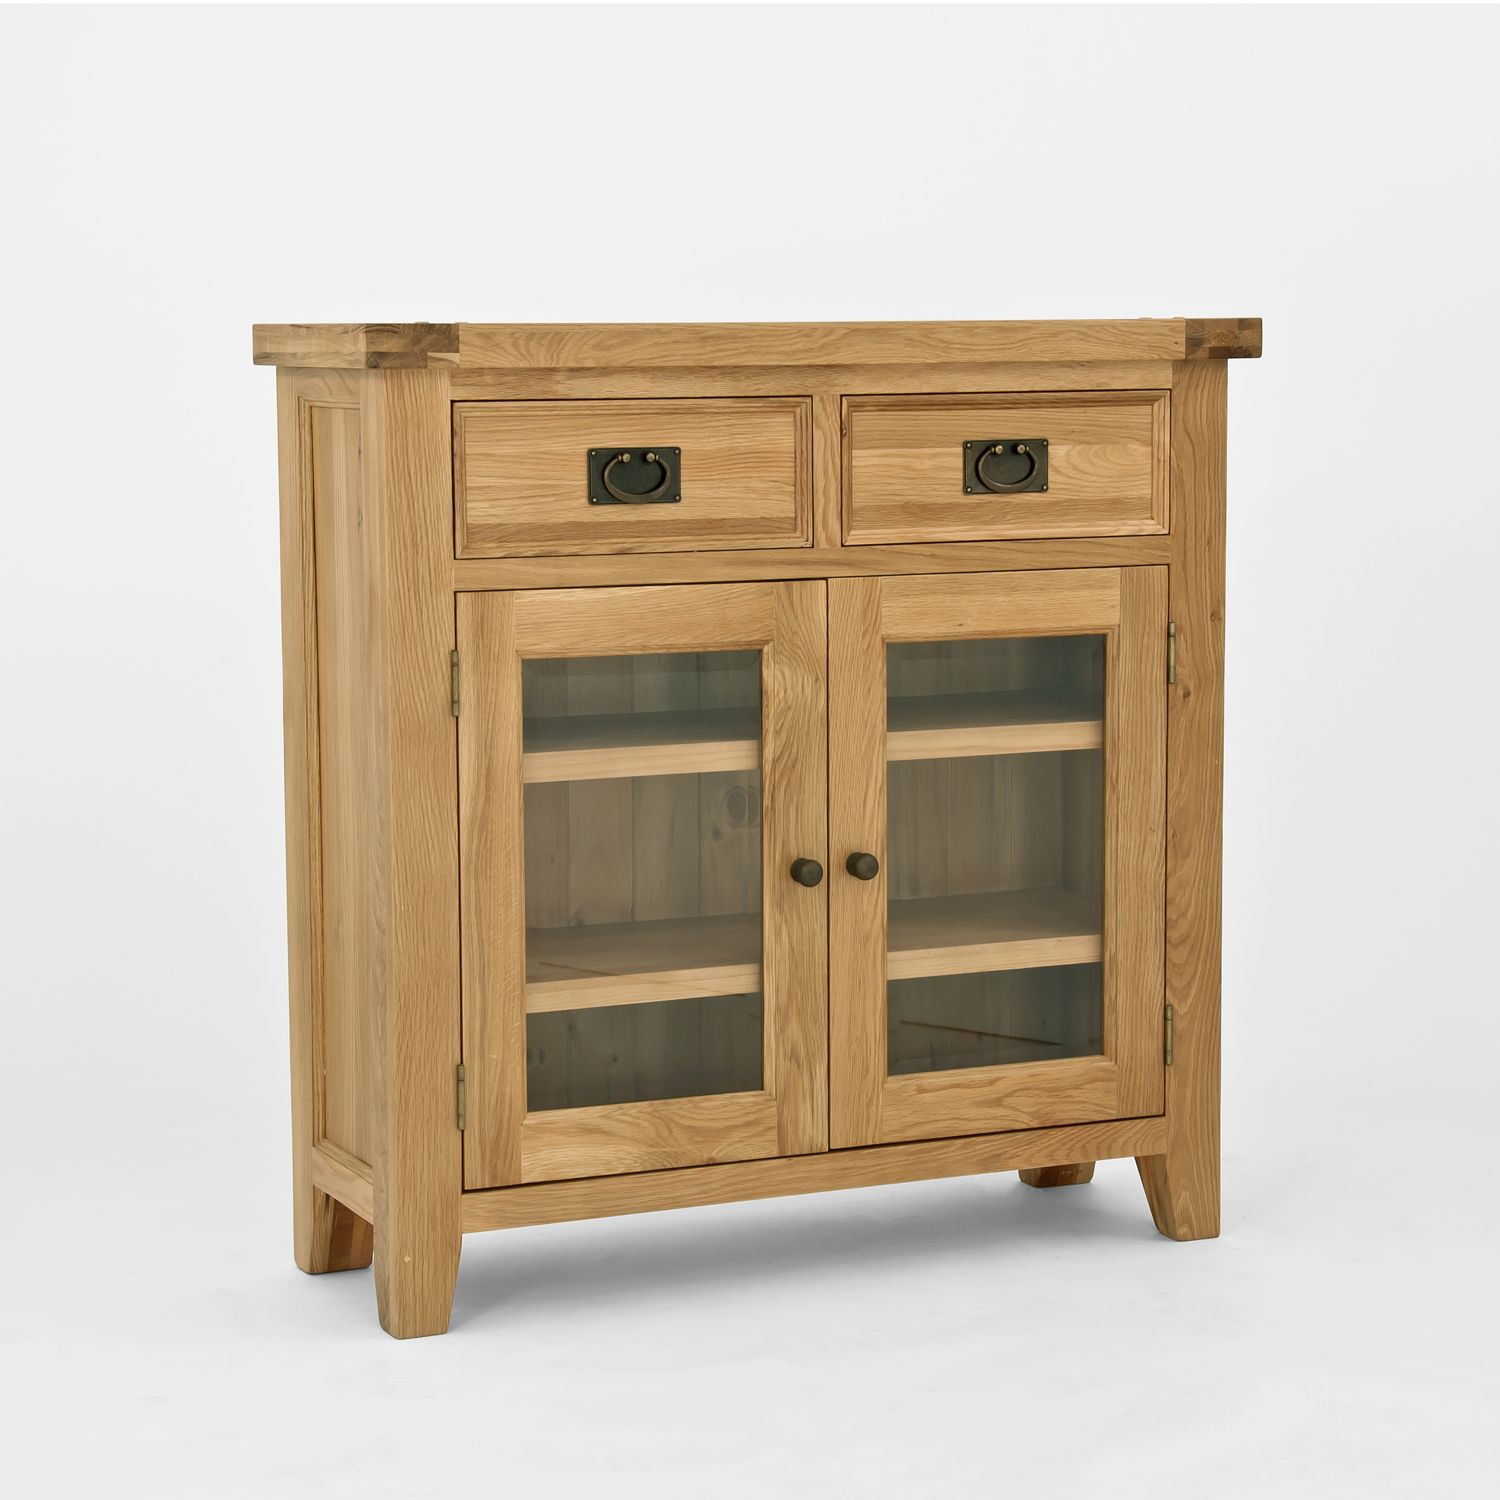 Chiltern Oak Small Sideboard Bookcase is an unusual item of